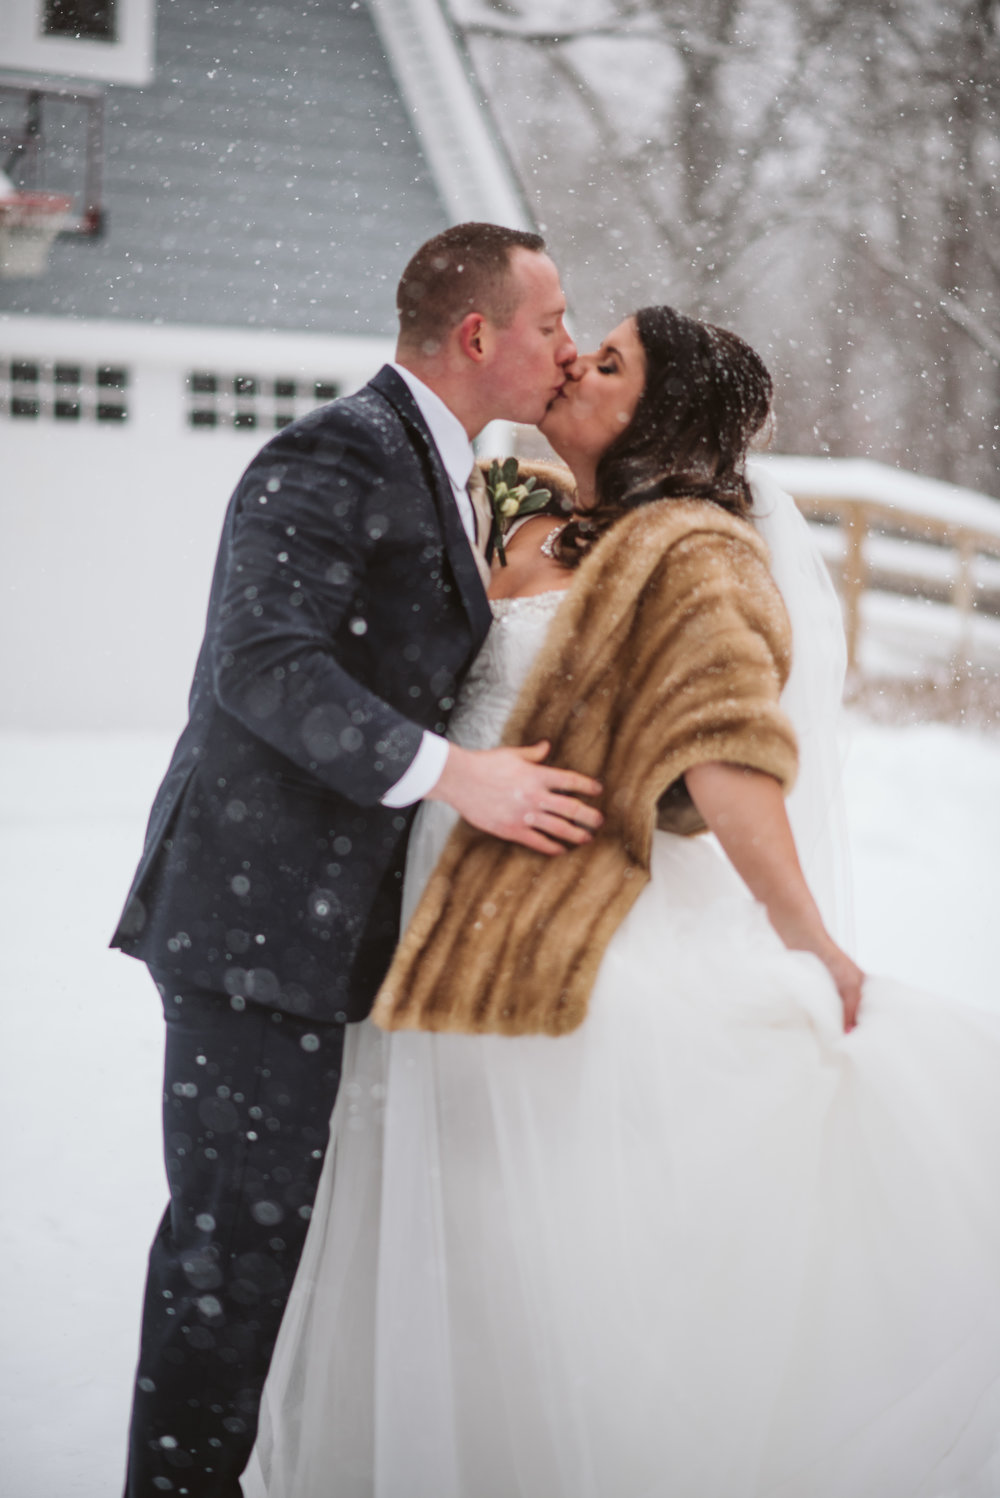 Bride and groom dancing in the snow